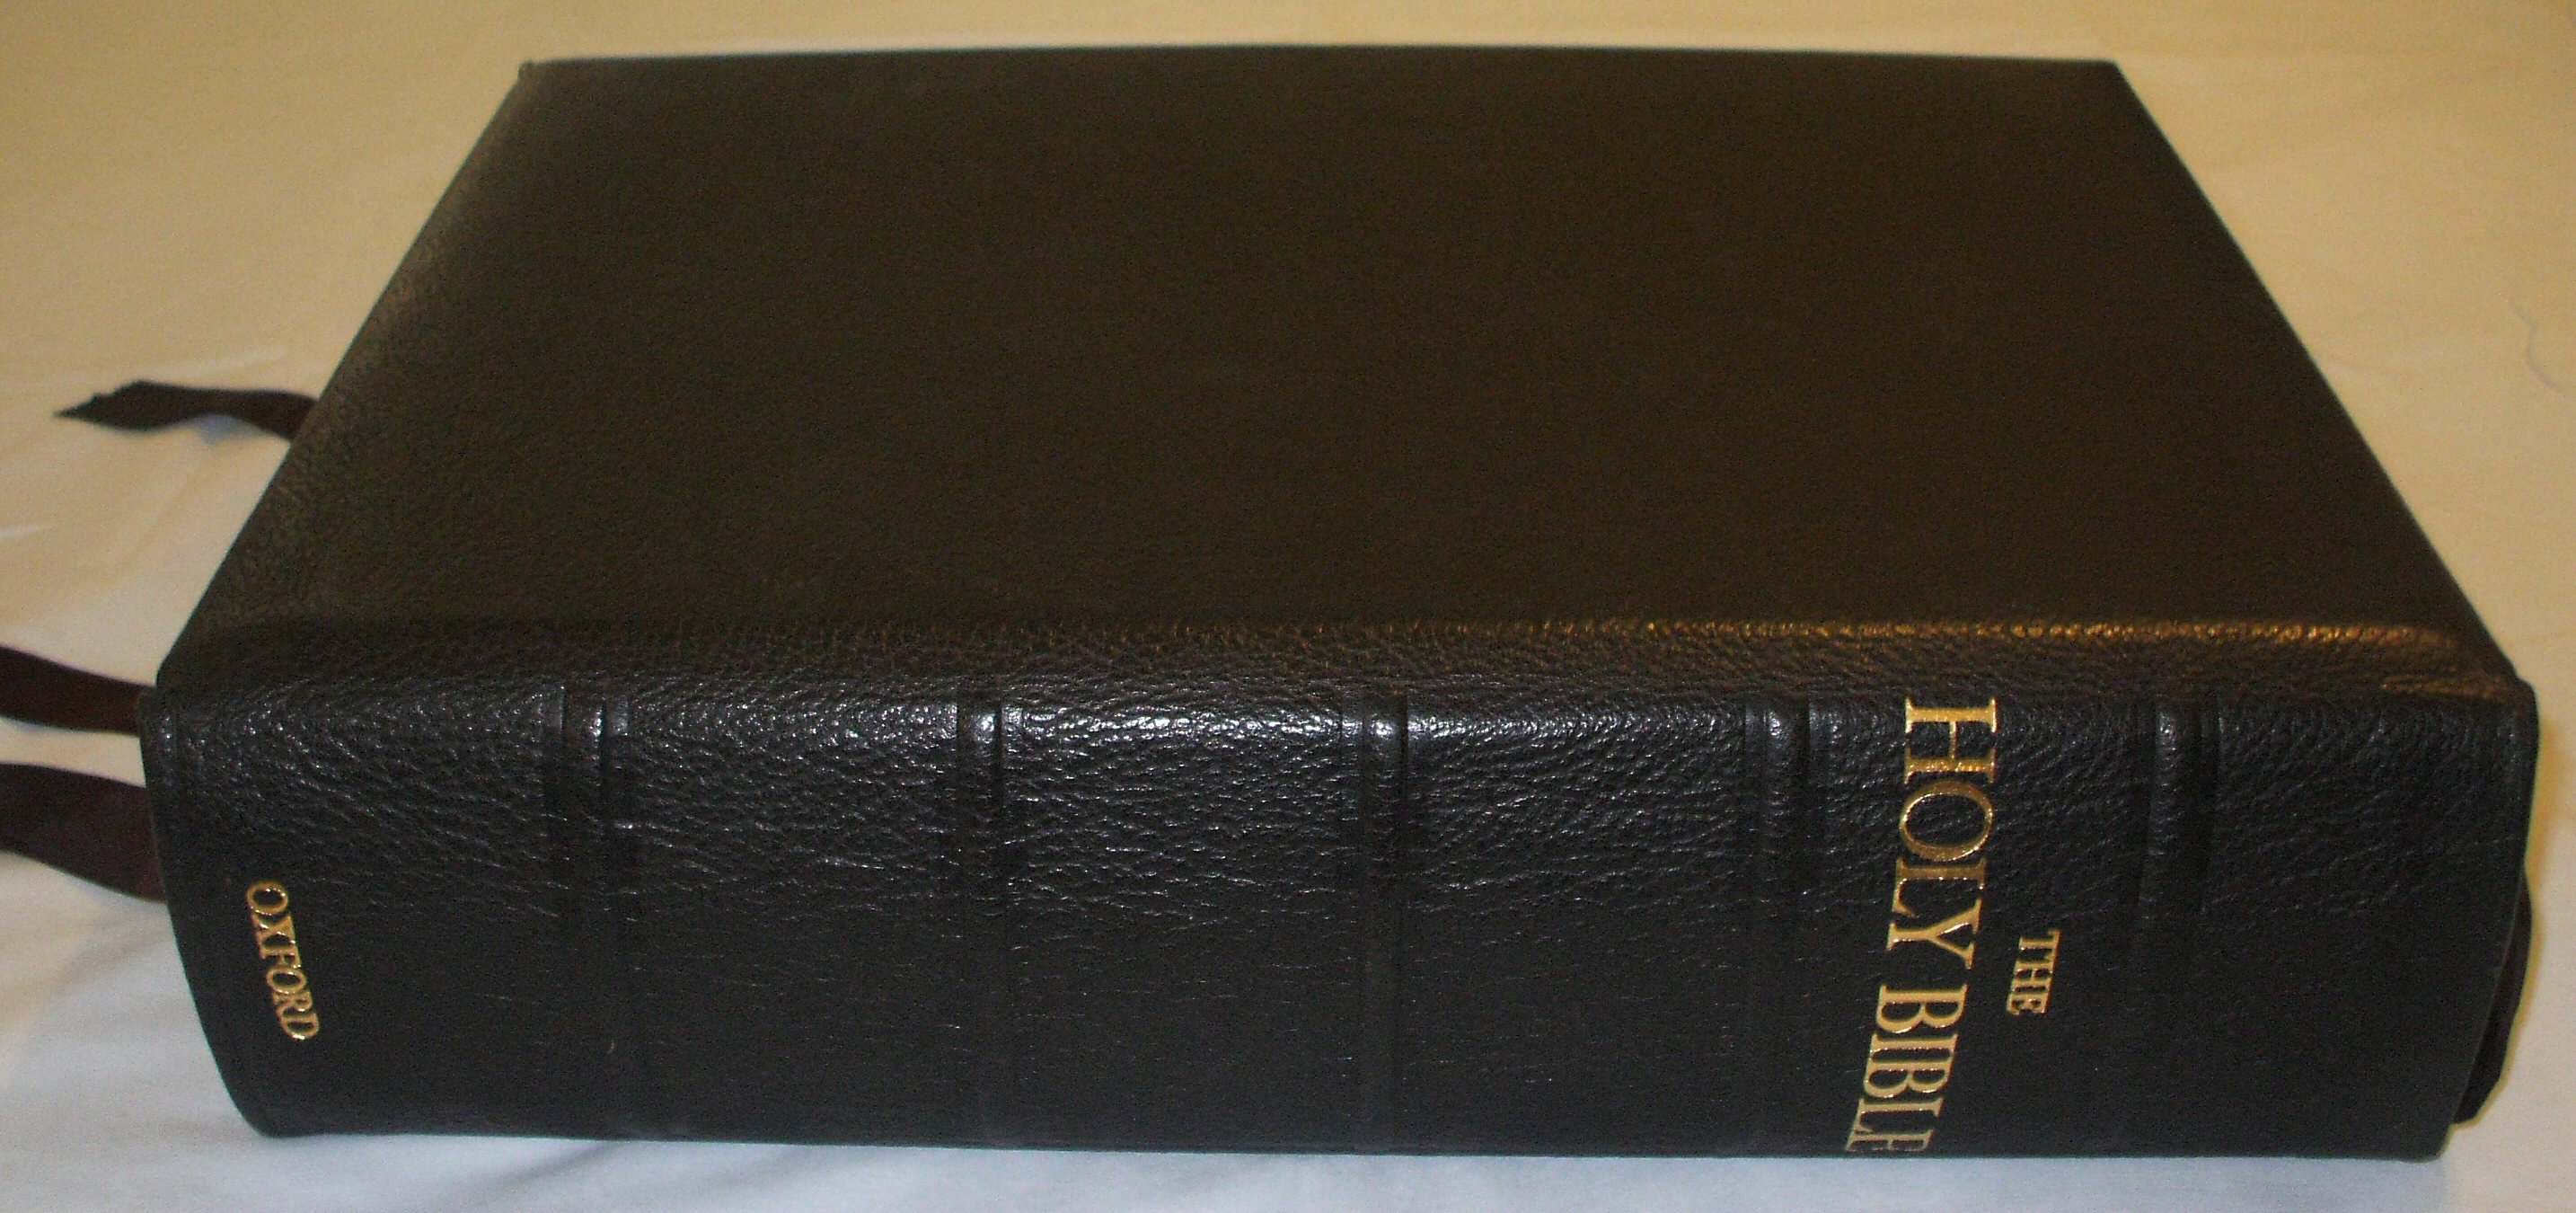 Oxford Letern Bible Spine 2